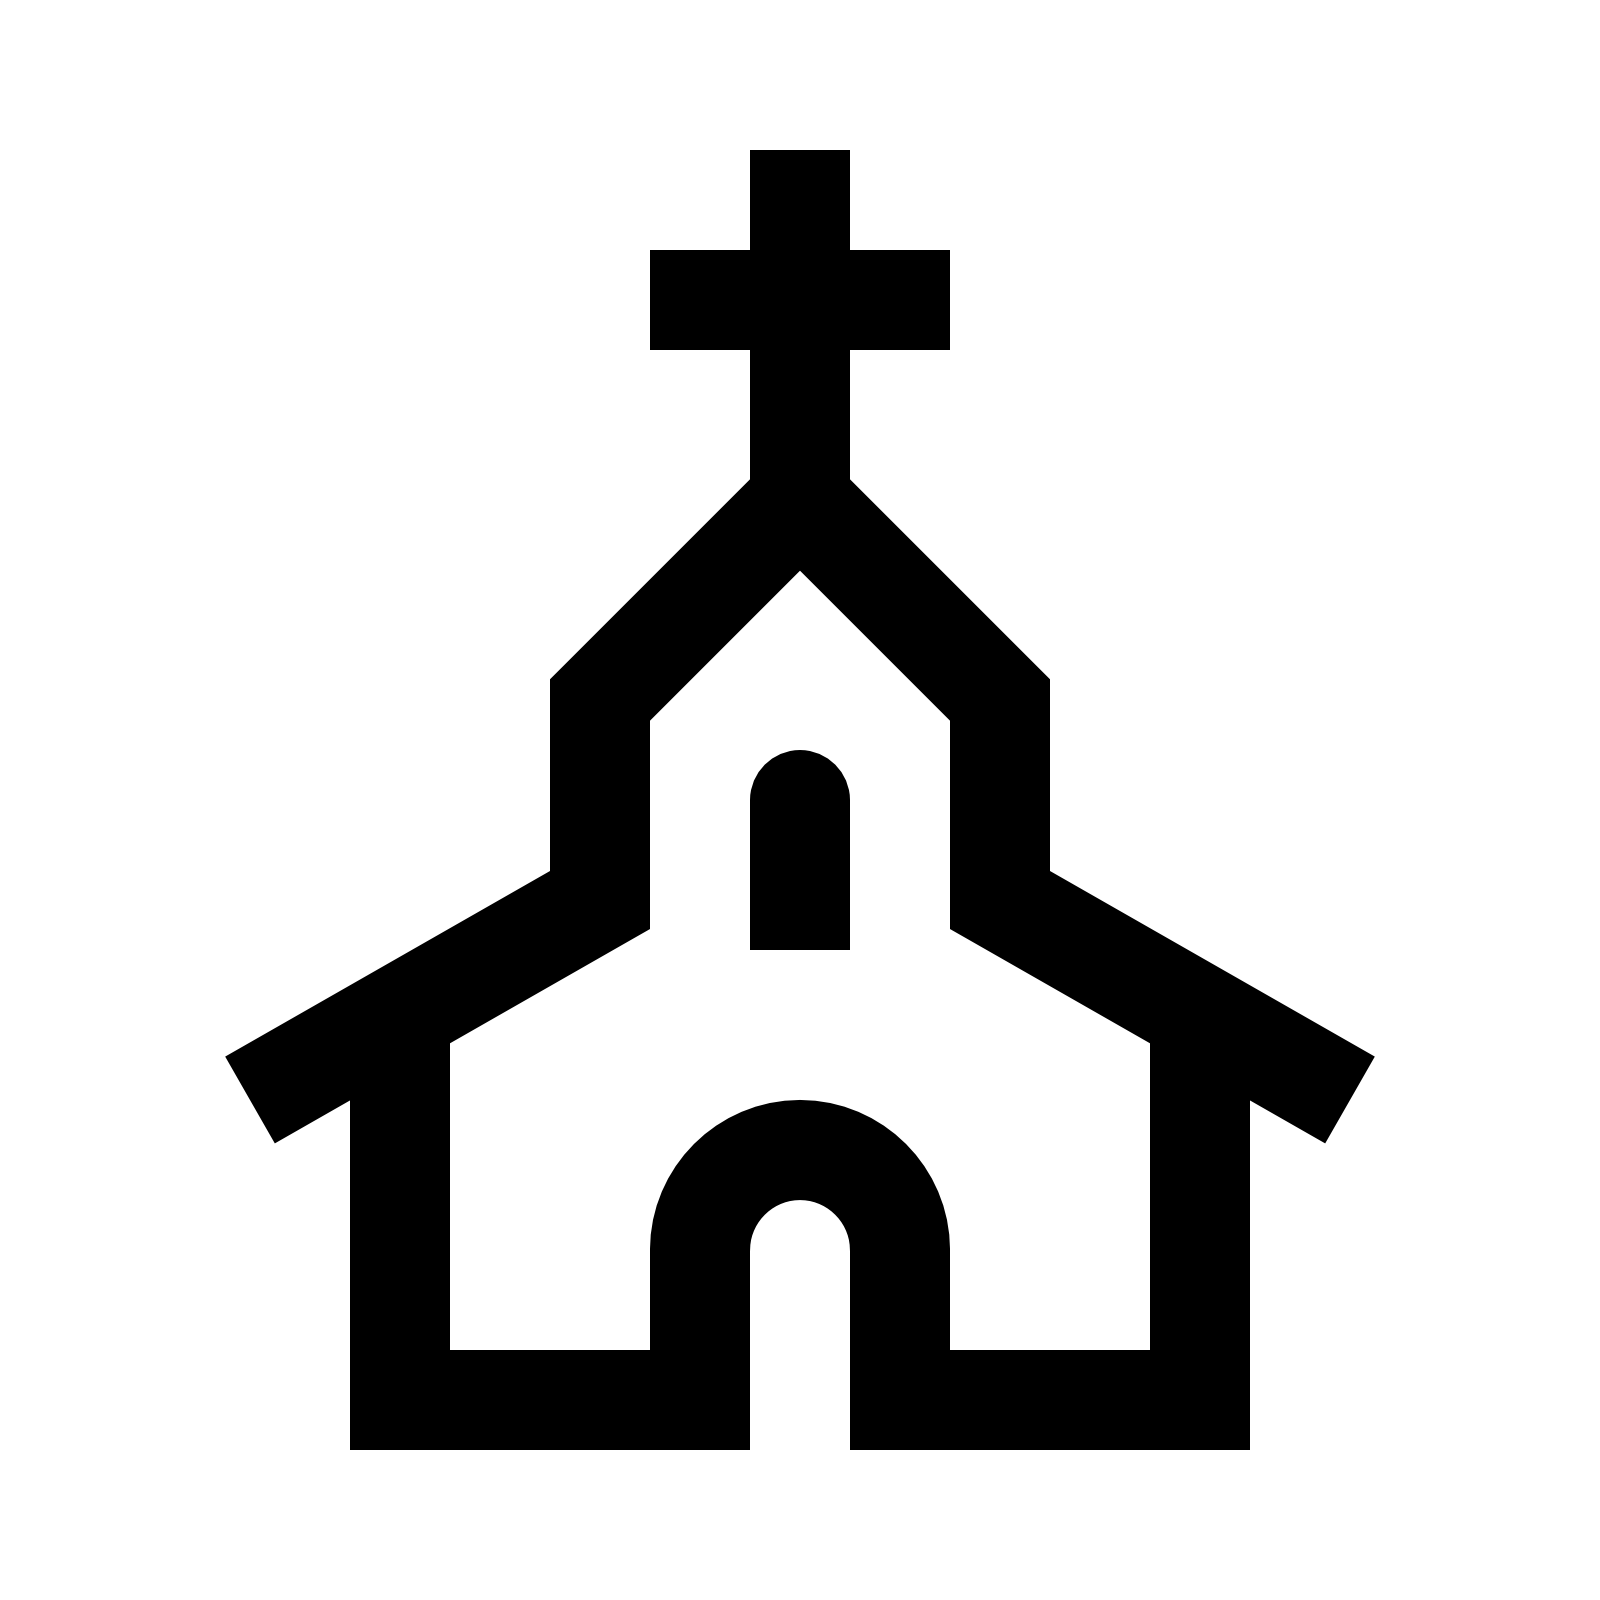 Church icon - Church PNG